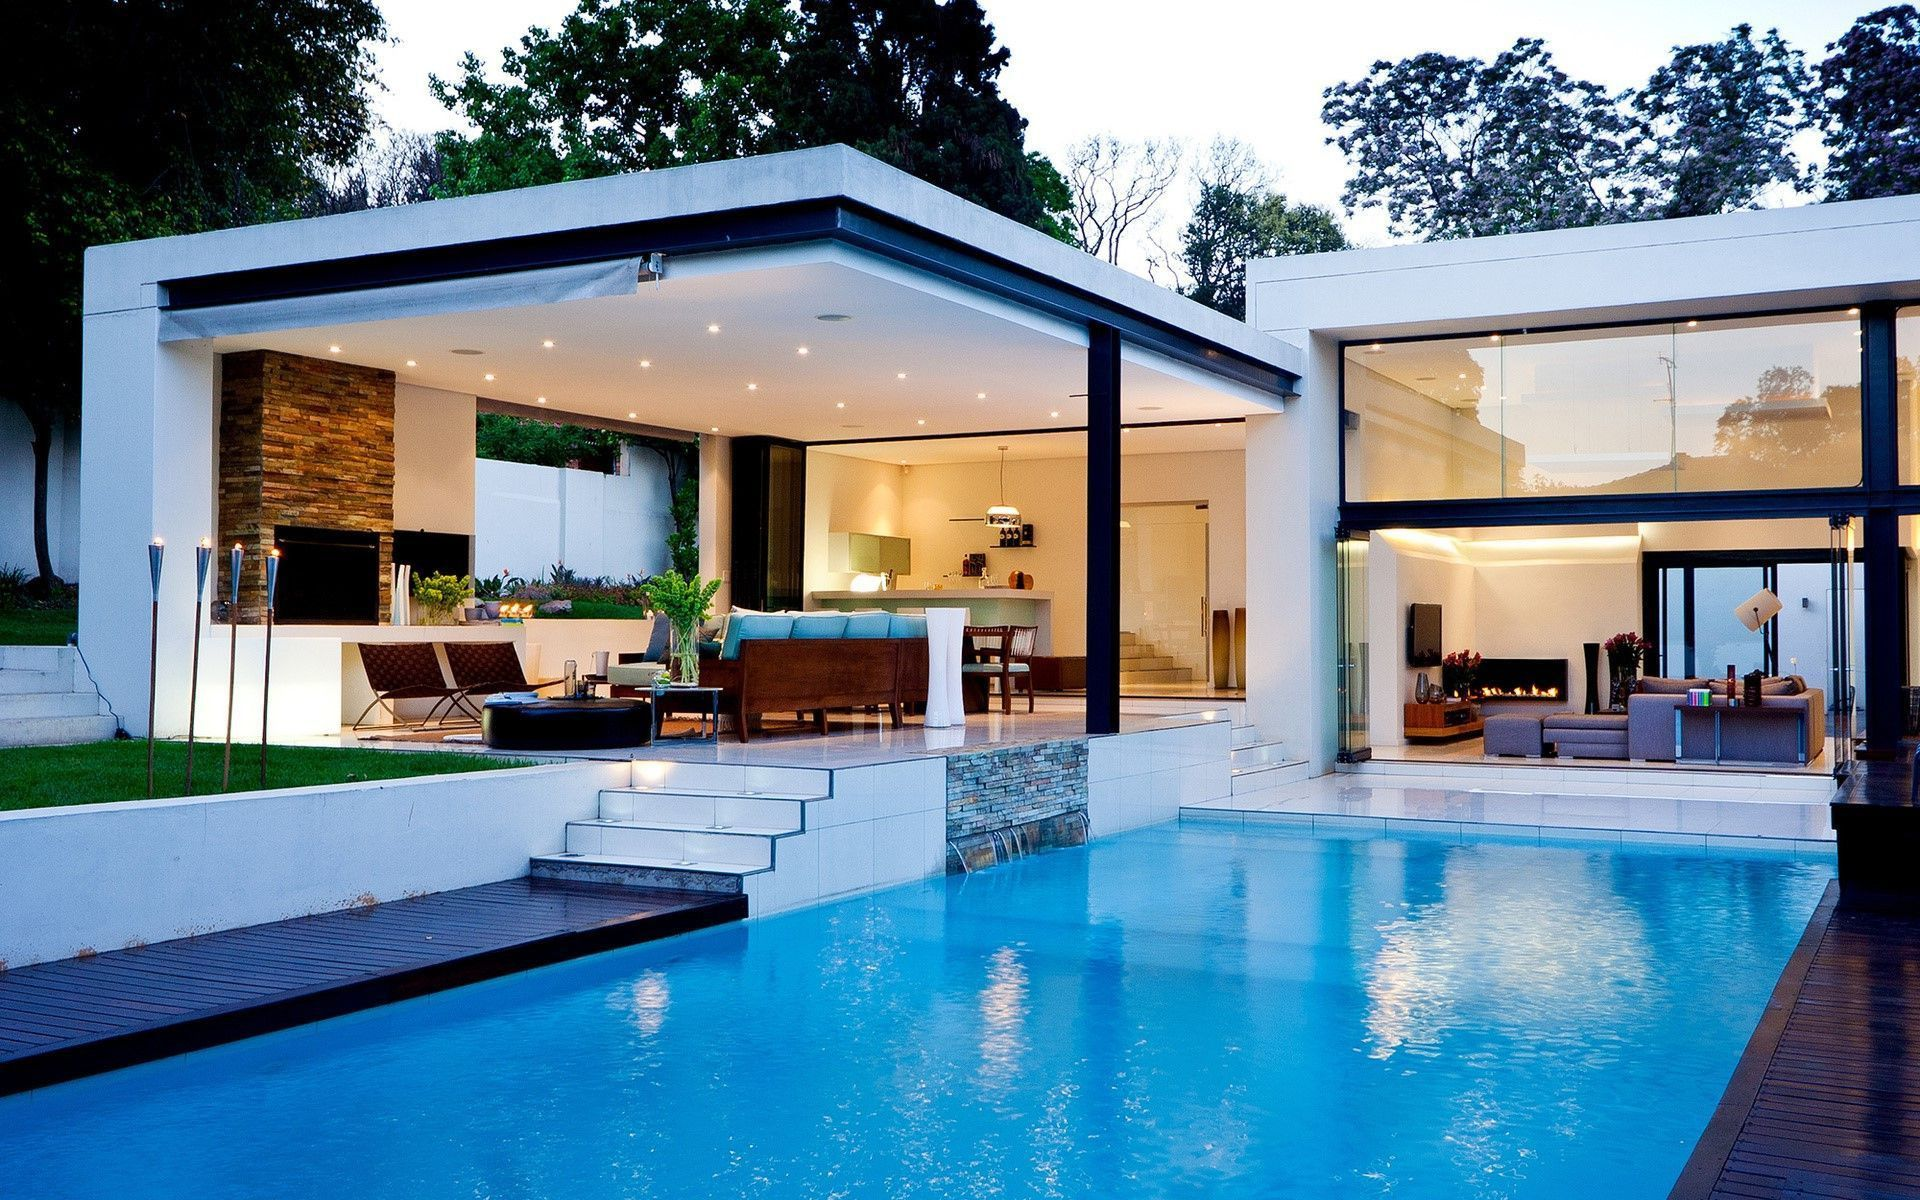 From All Natural Pool To Roof Infinity Pools The Current Swimming Pool Design As Well As Style Pool Swim Pool House Designs Modern Patio Design Pool Houses